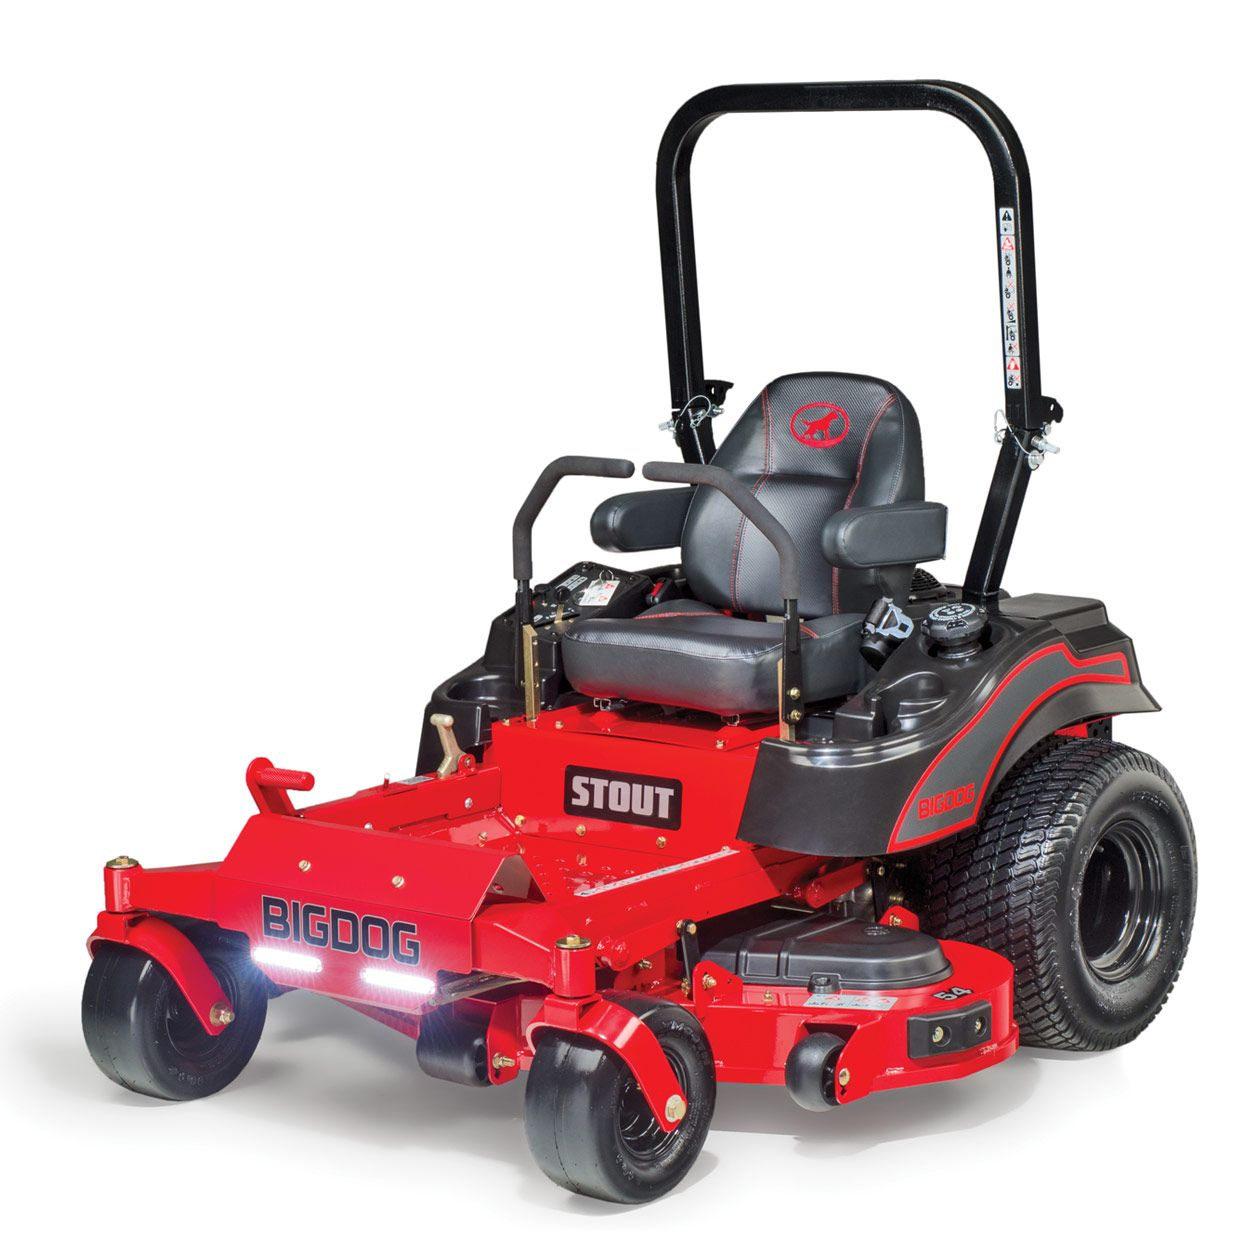 Residential And Commercial Zero Turn Radius Lawn Mowers And Tractors Bigdog Mower Co Lawn Mower Zero Turn Lawn Mowers Best Lawn Mower